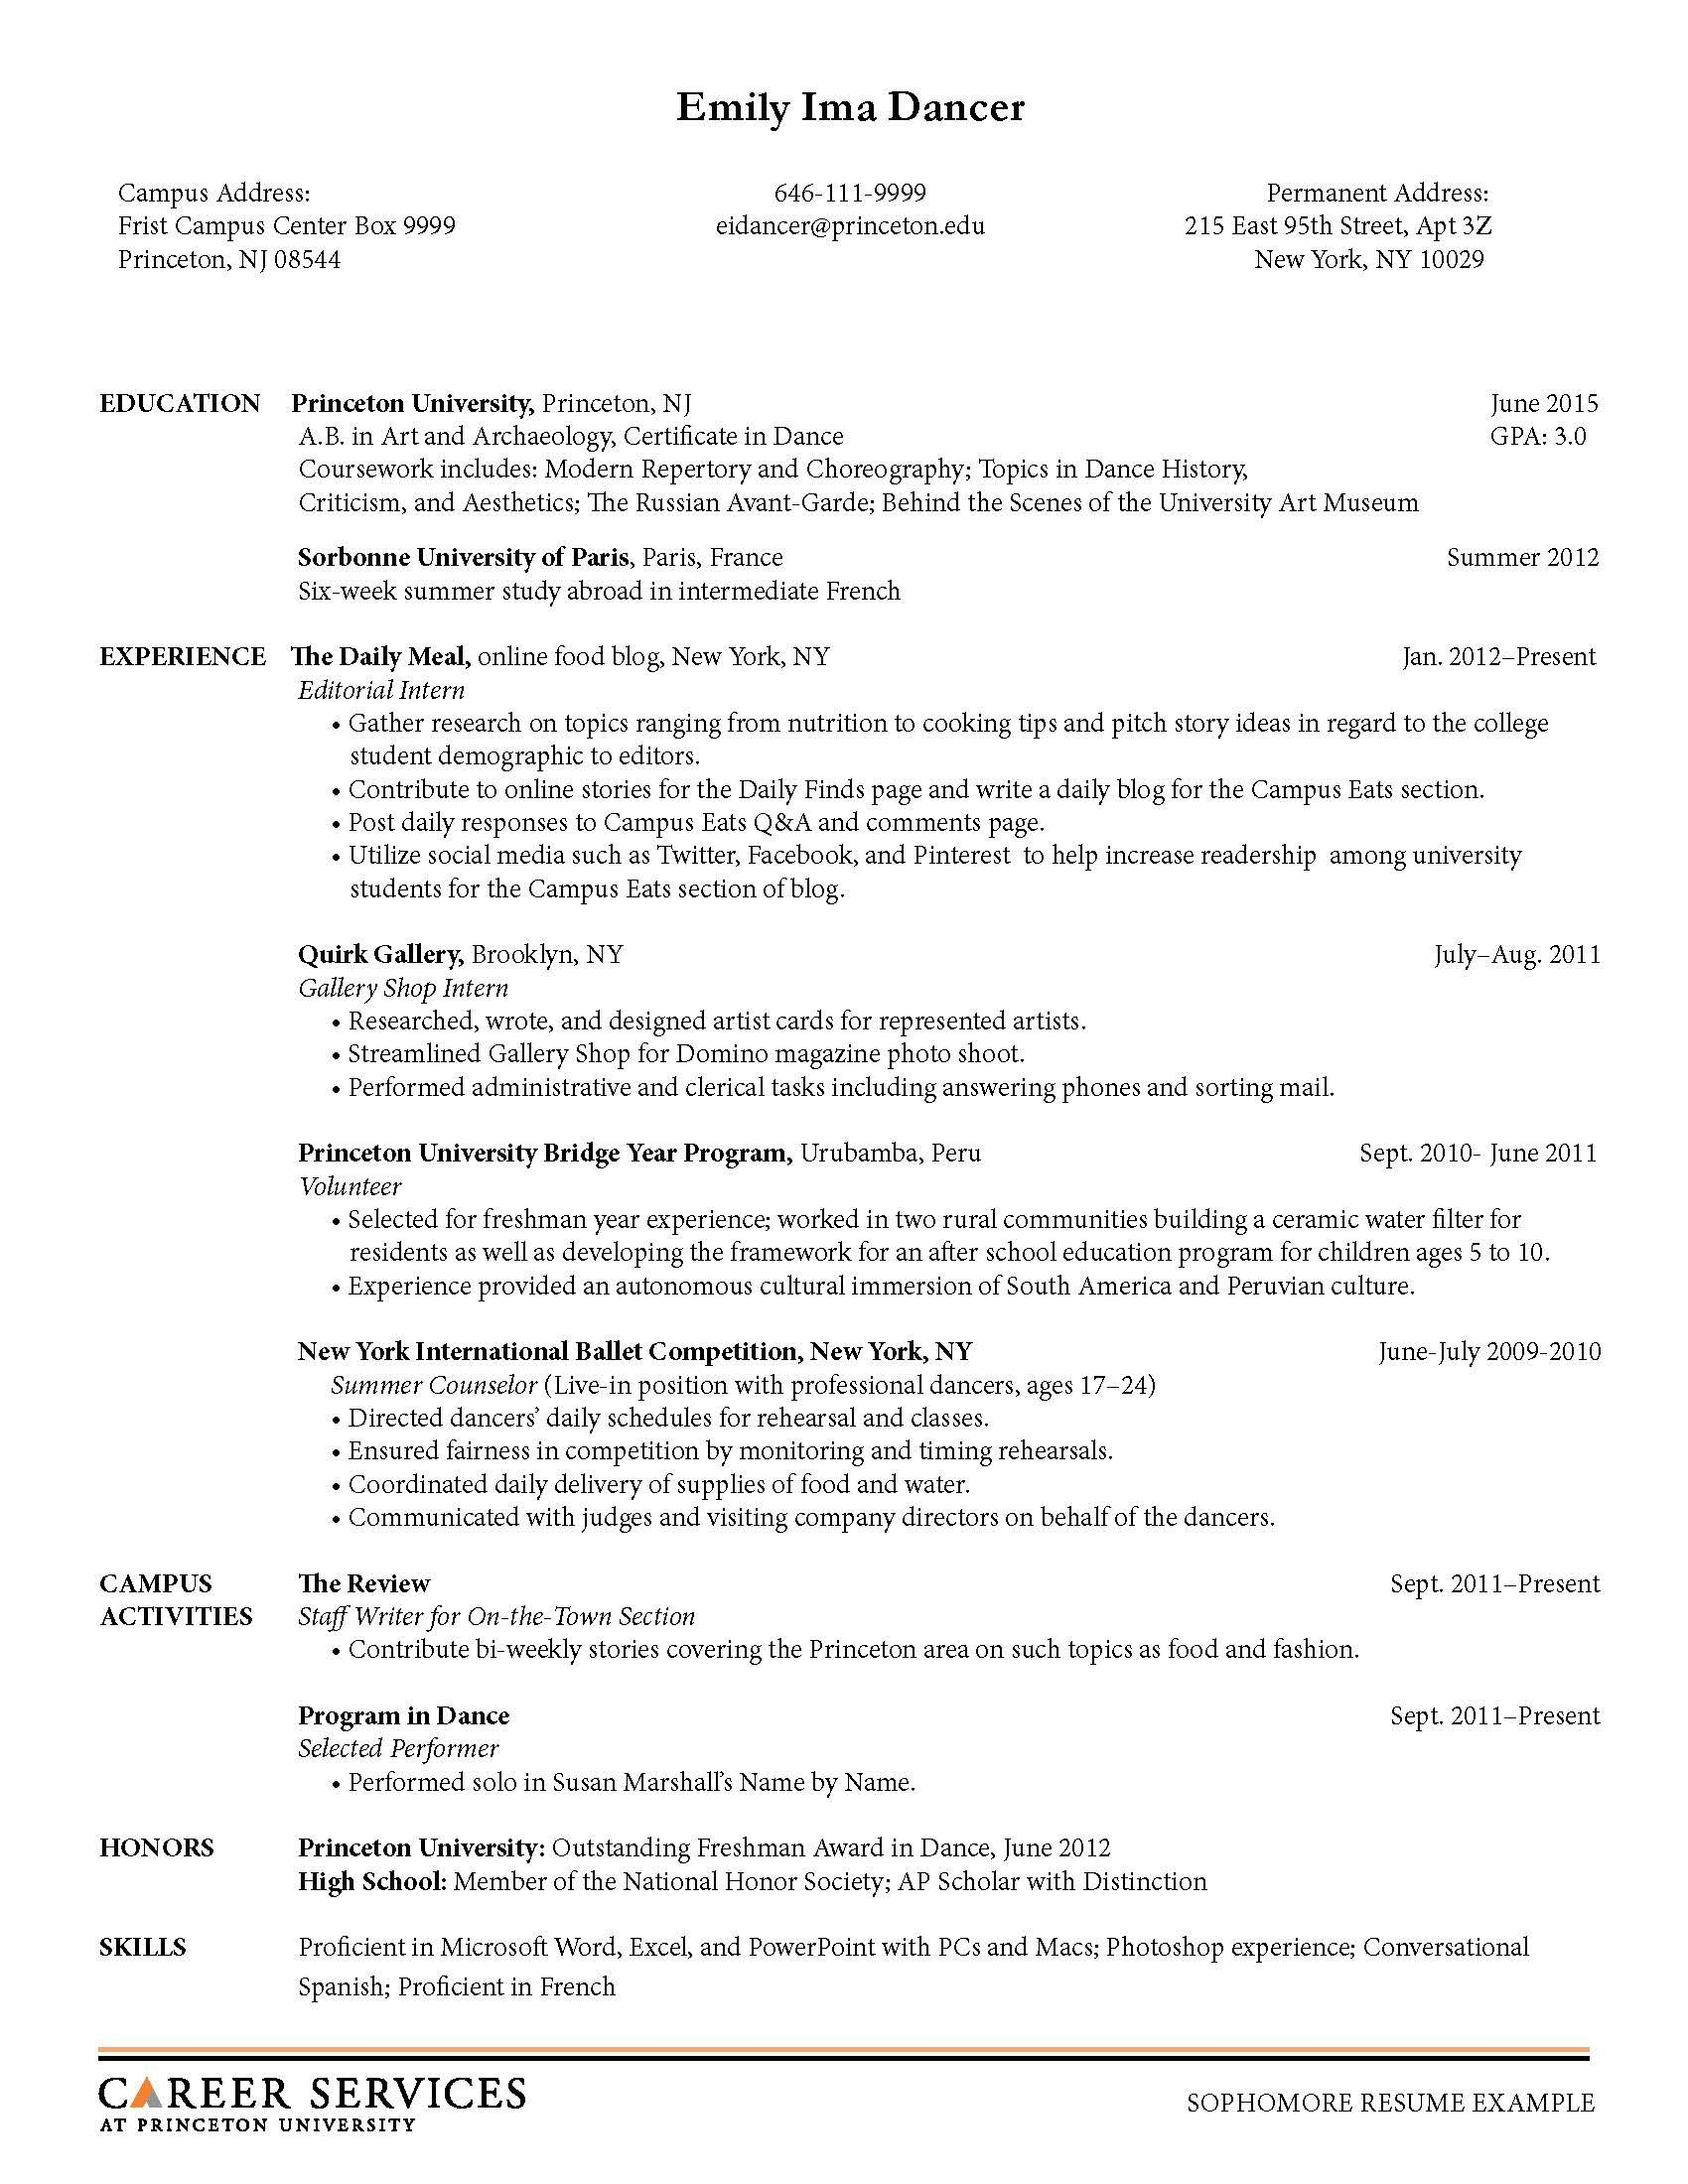 Opposenewapstandardsus  Nice Sample Resume Resume And Career On Pinterest With Likable Resume Templates For Nurses Besides Resume Extracurricular Activities Furthermore Program Management Resume With Cute Sample Of A Good Resume Also Government Resumes In Addition How To Write A Successful Resume And Resume For Personal Trainer As Well As Designed Resumes Additionally Scholarship Resume Example From Pinterestcom With Opposenewapstandardsus  Likable Sample Resume Resume And Career On Pinterest With Cute Resume Templates For Nurses Besides Resume Extracurricular Activities Furthermore Program Management Resume And Nice Sample Of A Good Resume Also Government Resumes In Addition How To Write A Successful Resume From Pinterestcom